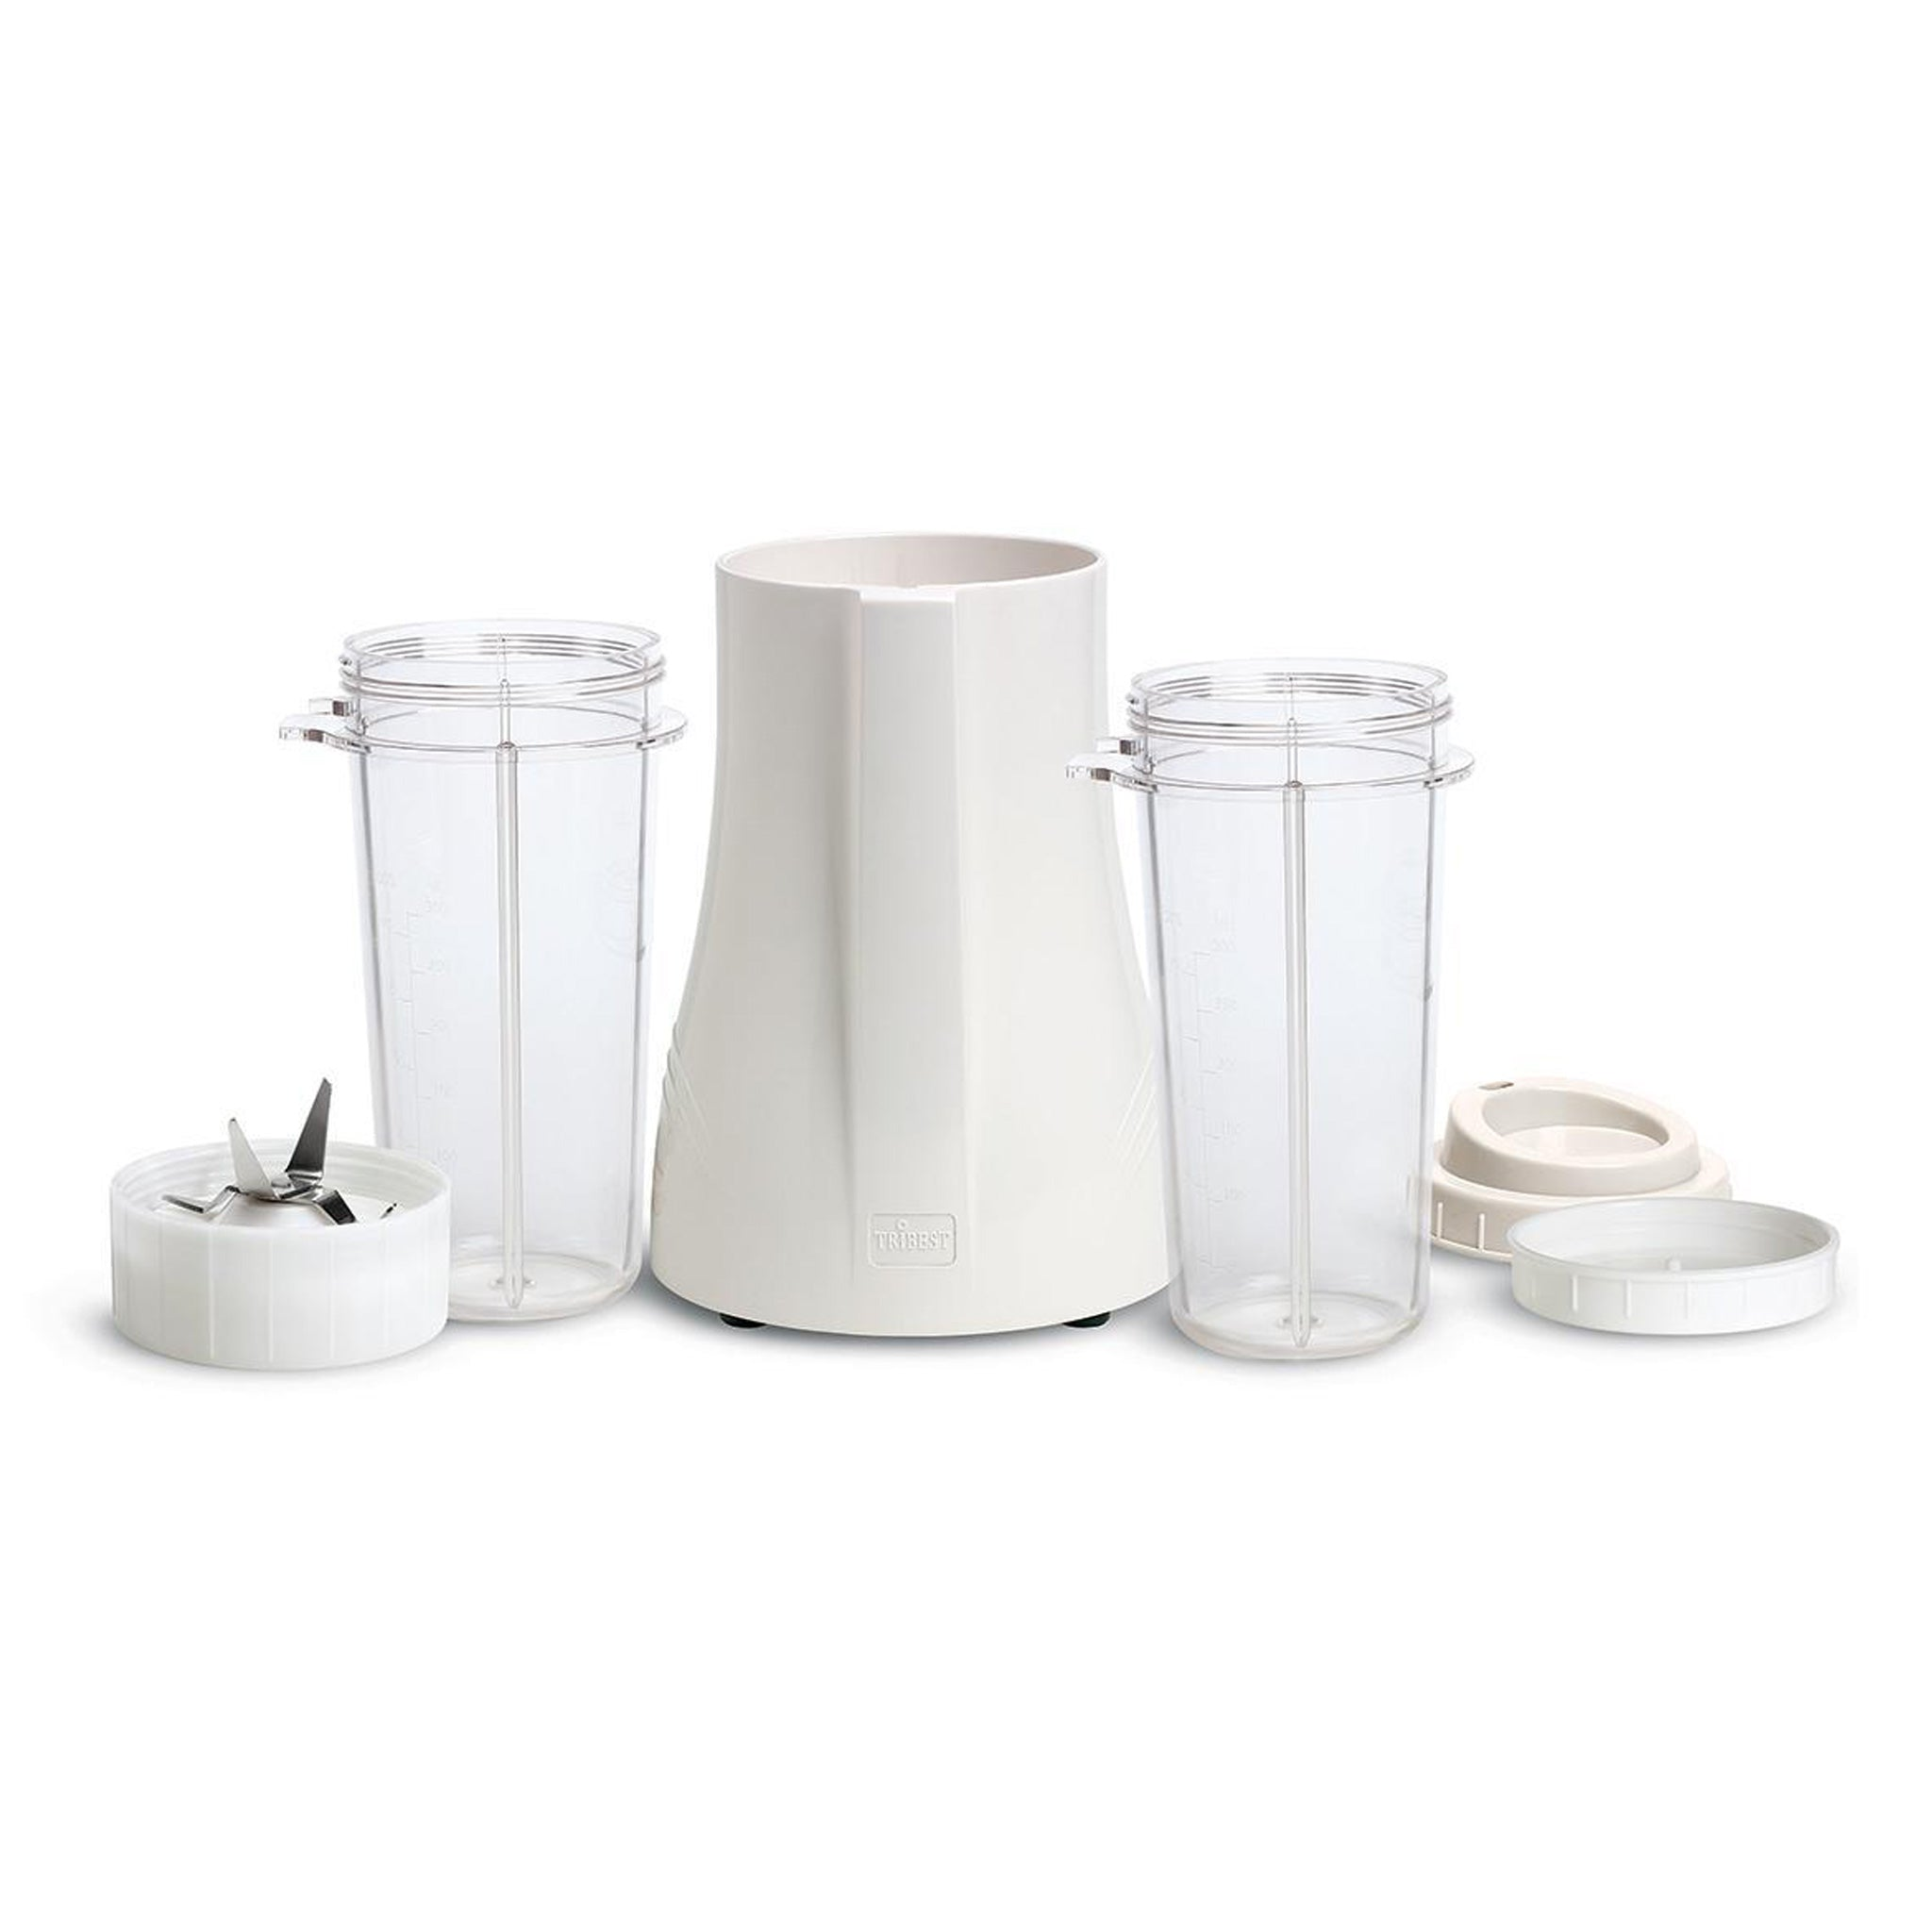 Personal Blender Original Single-Serving Blender (6-Piece Set) PB-150-A - Parts - Tribest